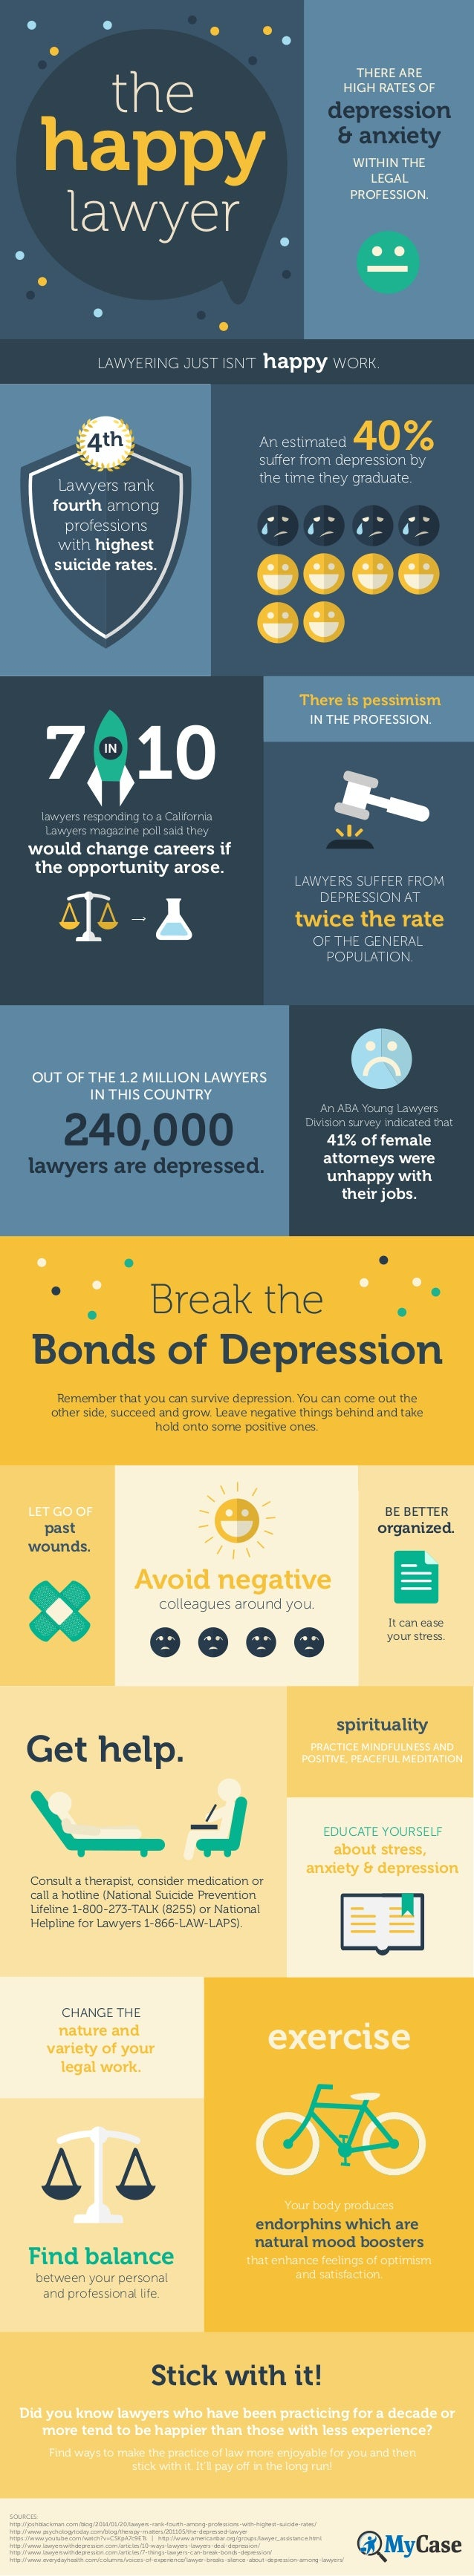 The Happy Lawyer Infographic